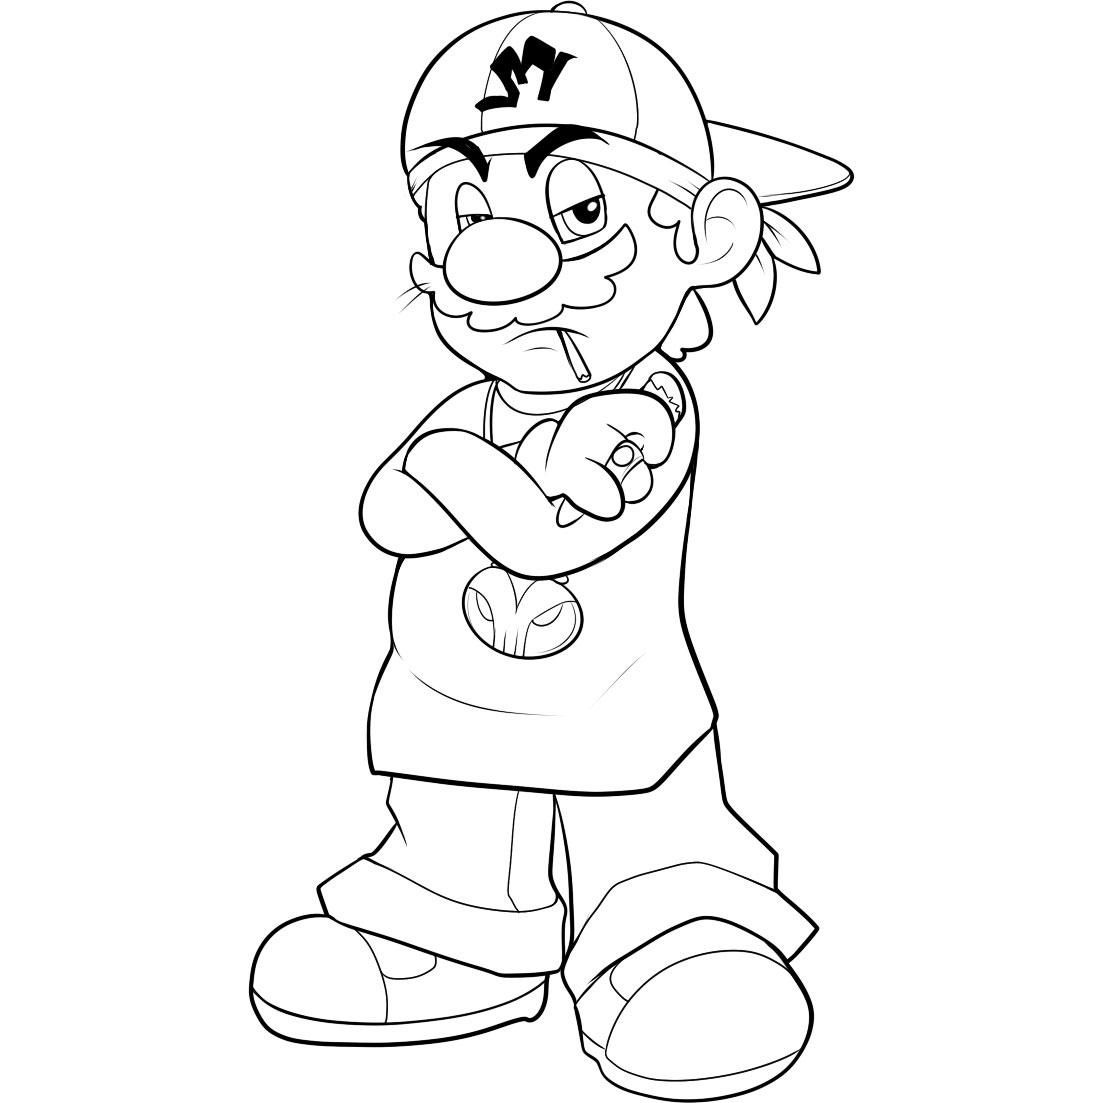 Free Printable Mario Coloring Pages For Kids Coloring